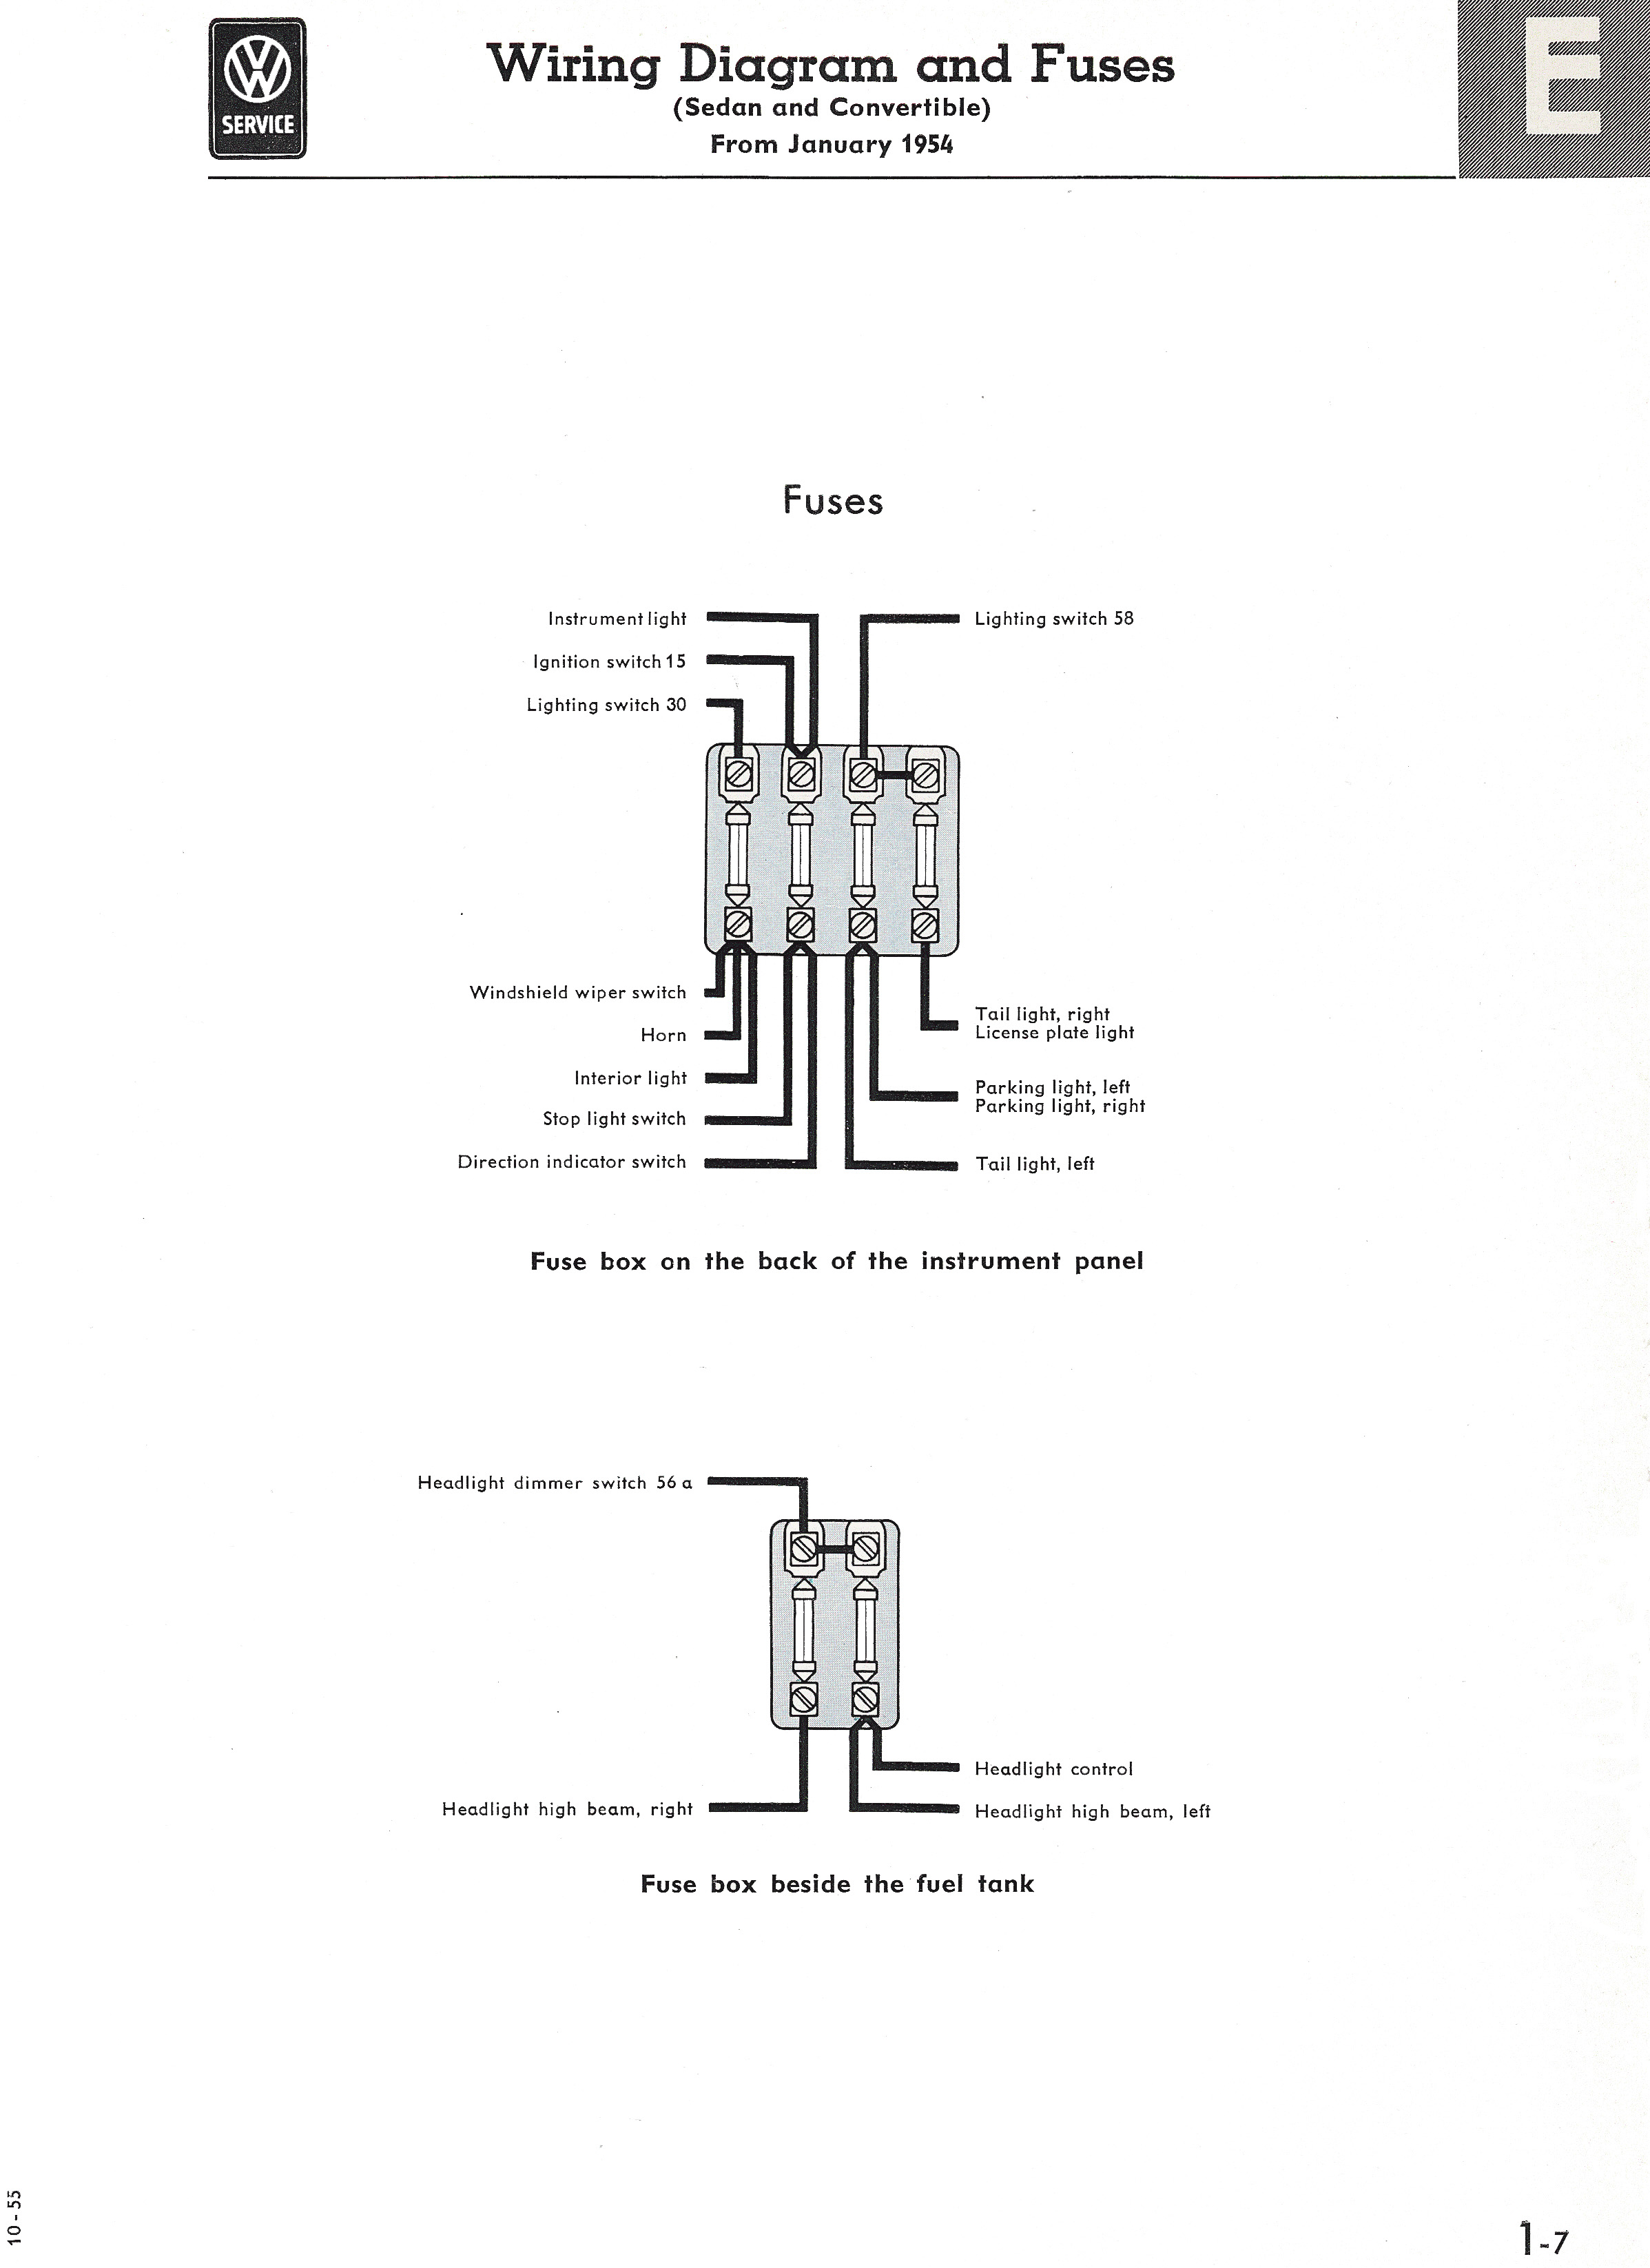 Type 1 Wiring Diagrams 68 Ford Mustang Diagram